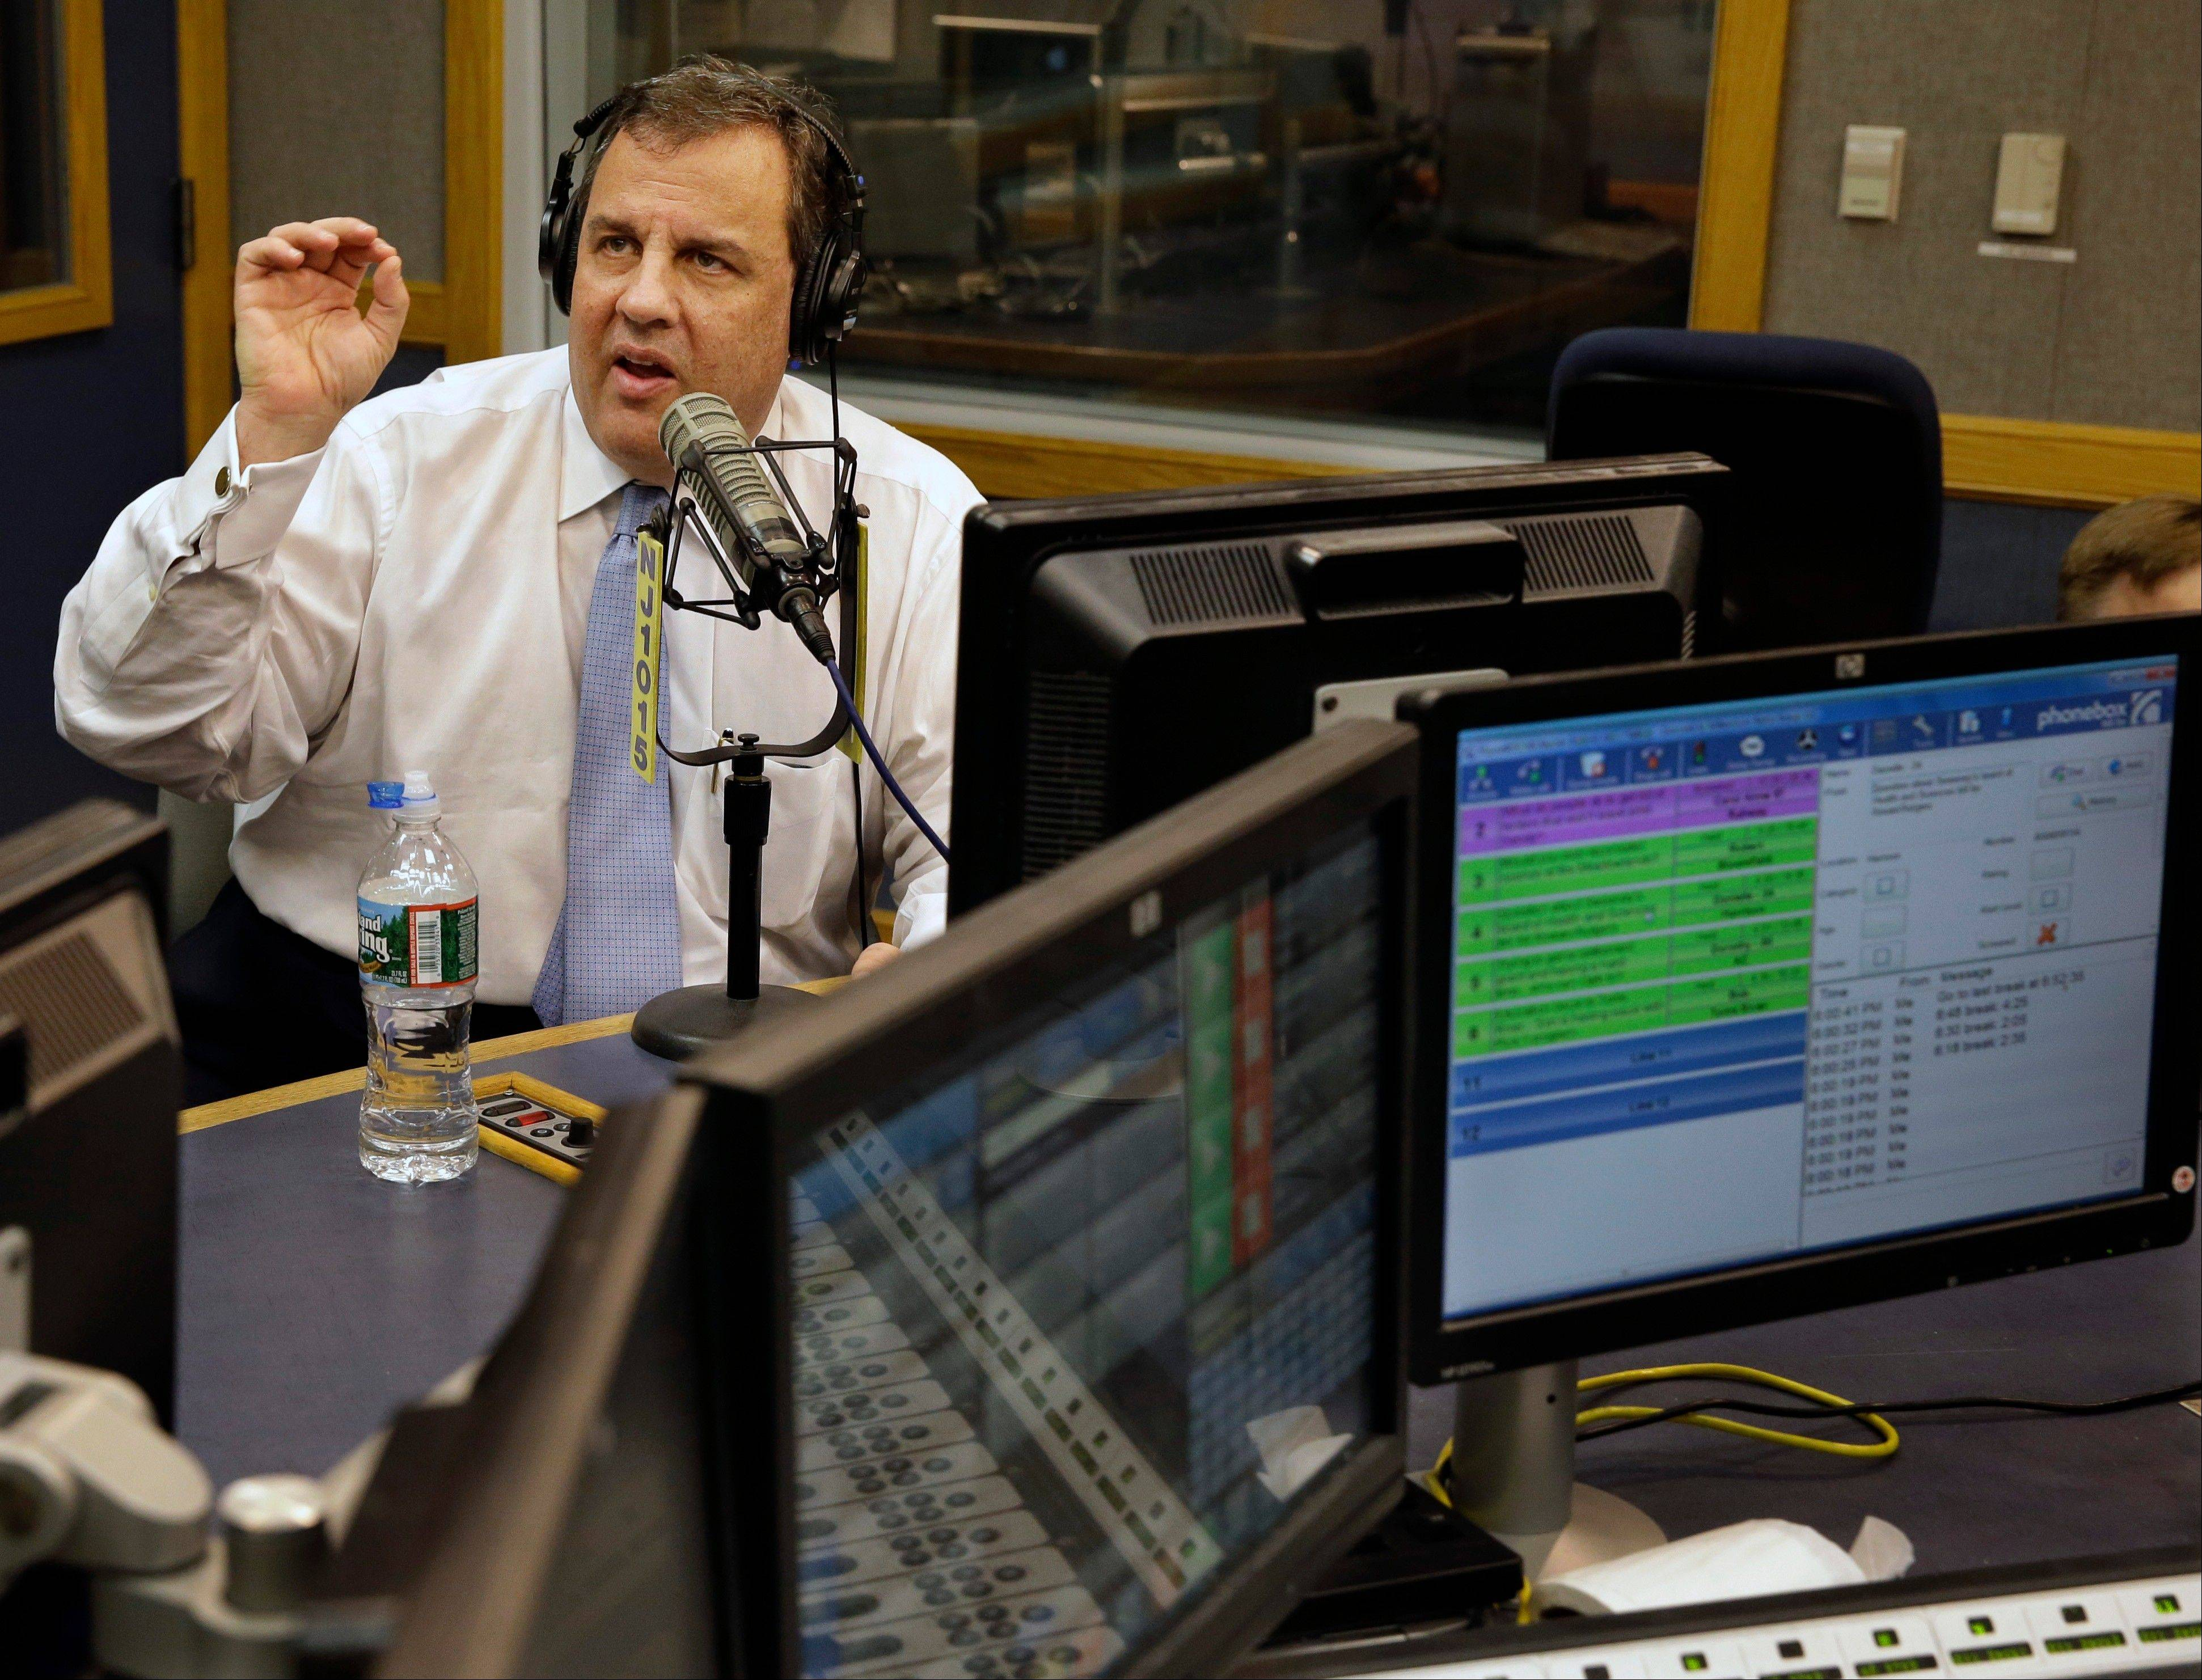 New Jersey Gov. Chris Christie sits in a studio during his radio program, �Ask the Governor� broadcast Monday. During the program, Christie took questions from callers for the first time in more than three weeks as his campaign looked for a way to pay for lawyers as a political payback scandal continues.